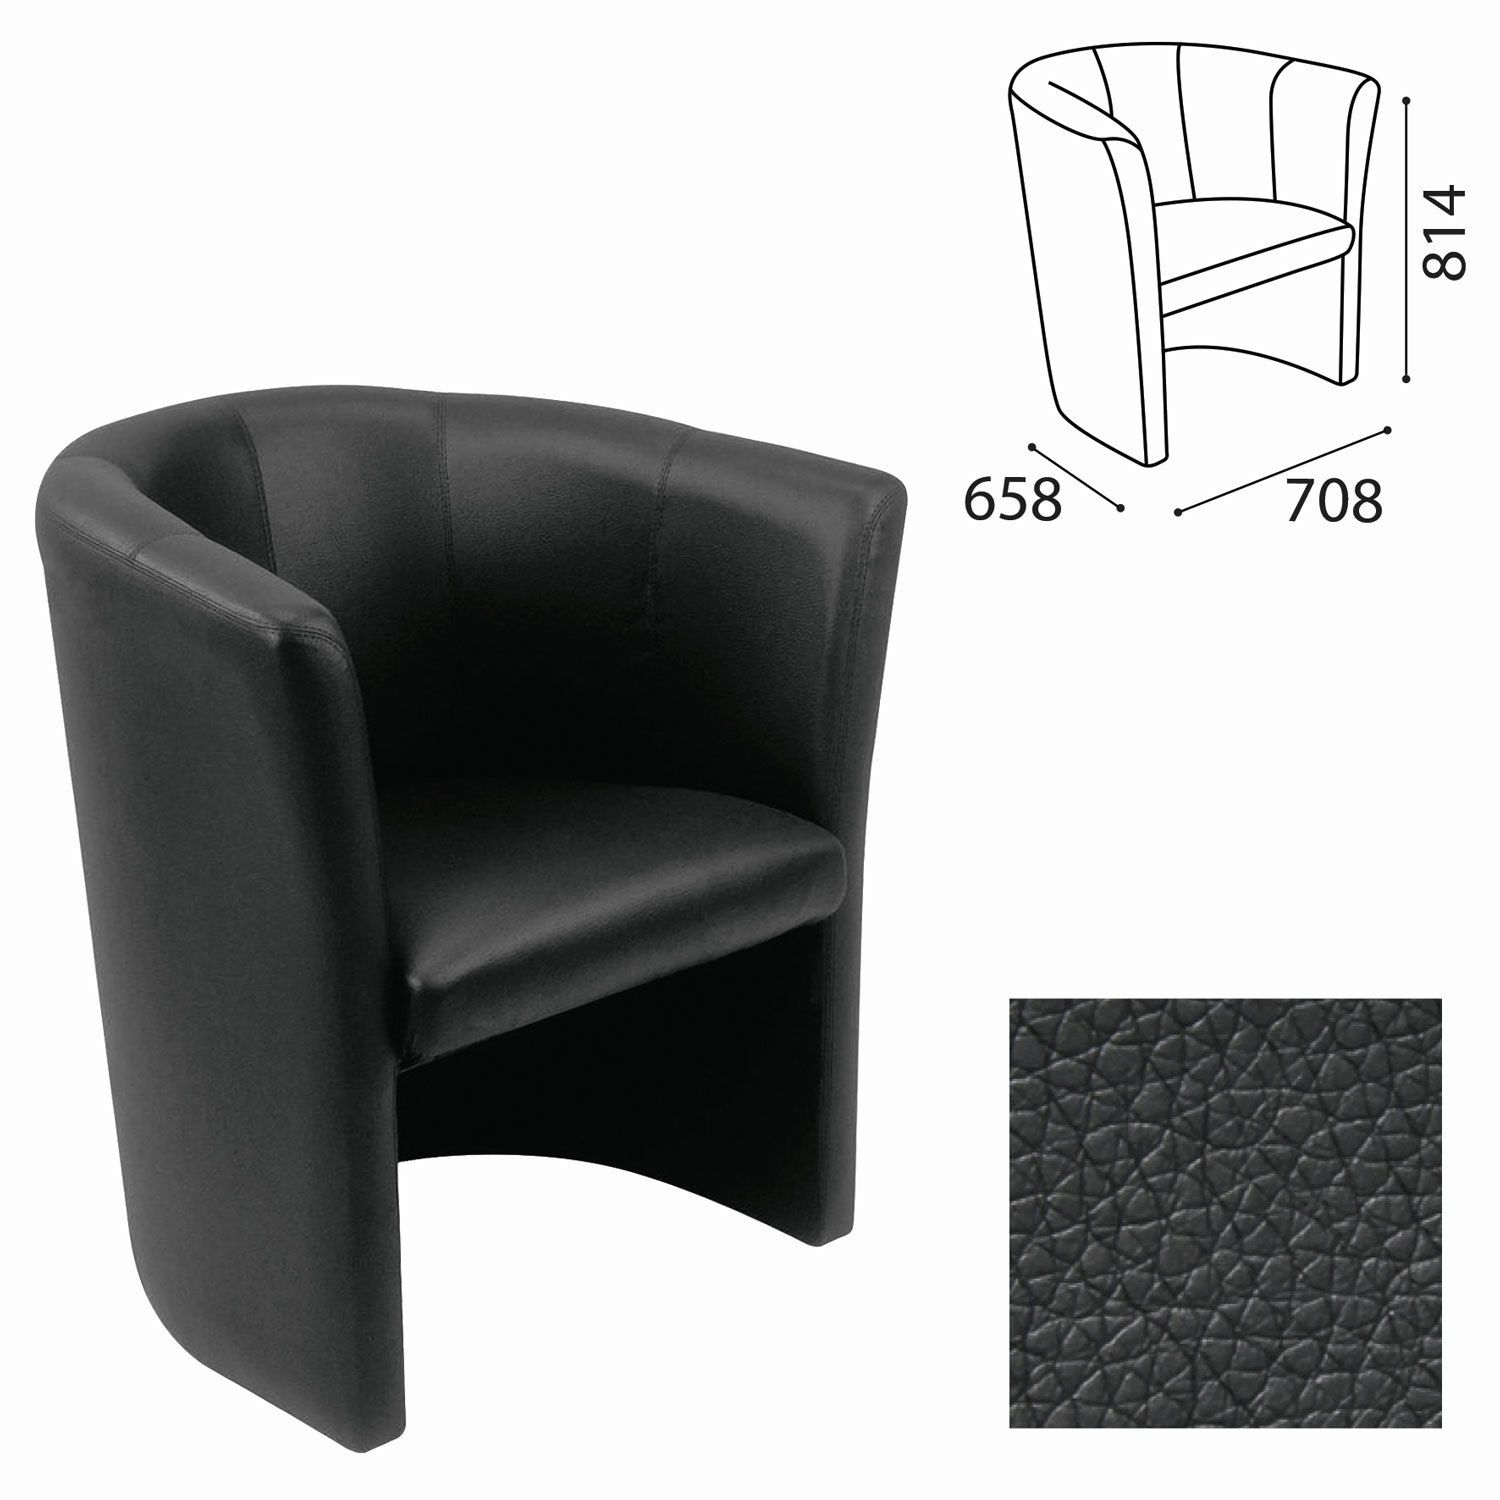 """Chair """"Club"""", 814x708x658 mm, with armrests, leatherette, black"""